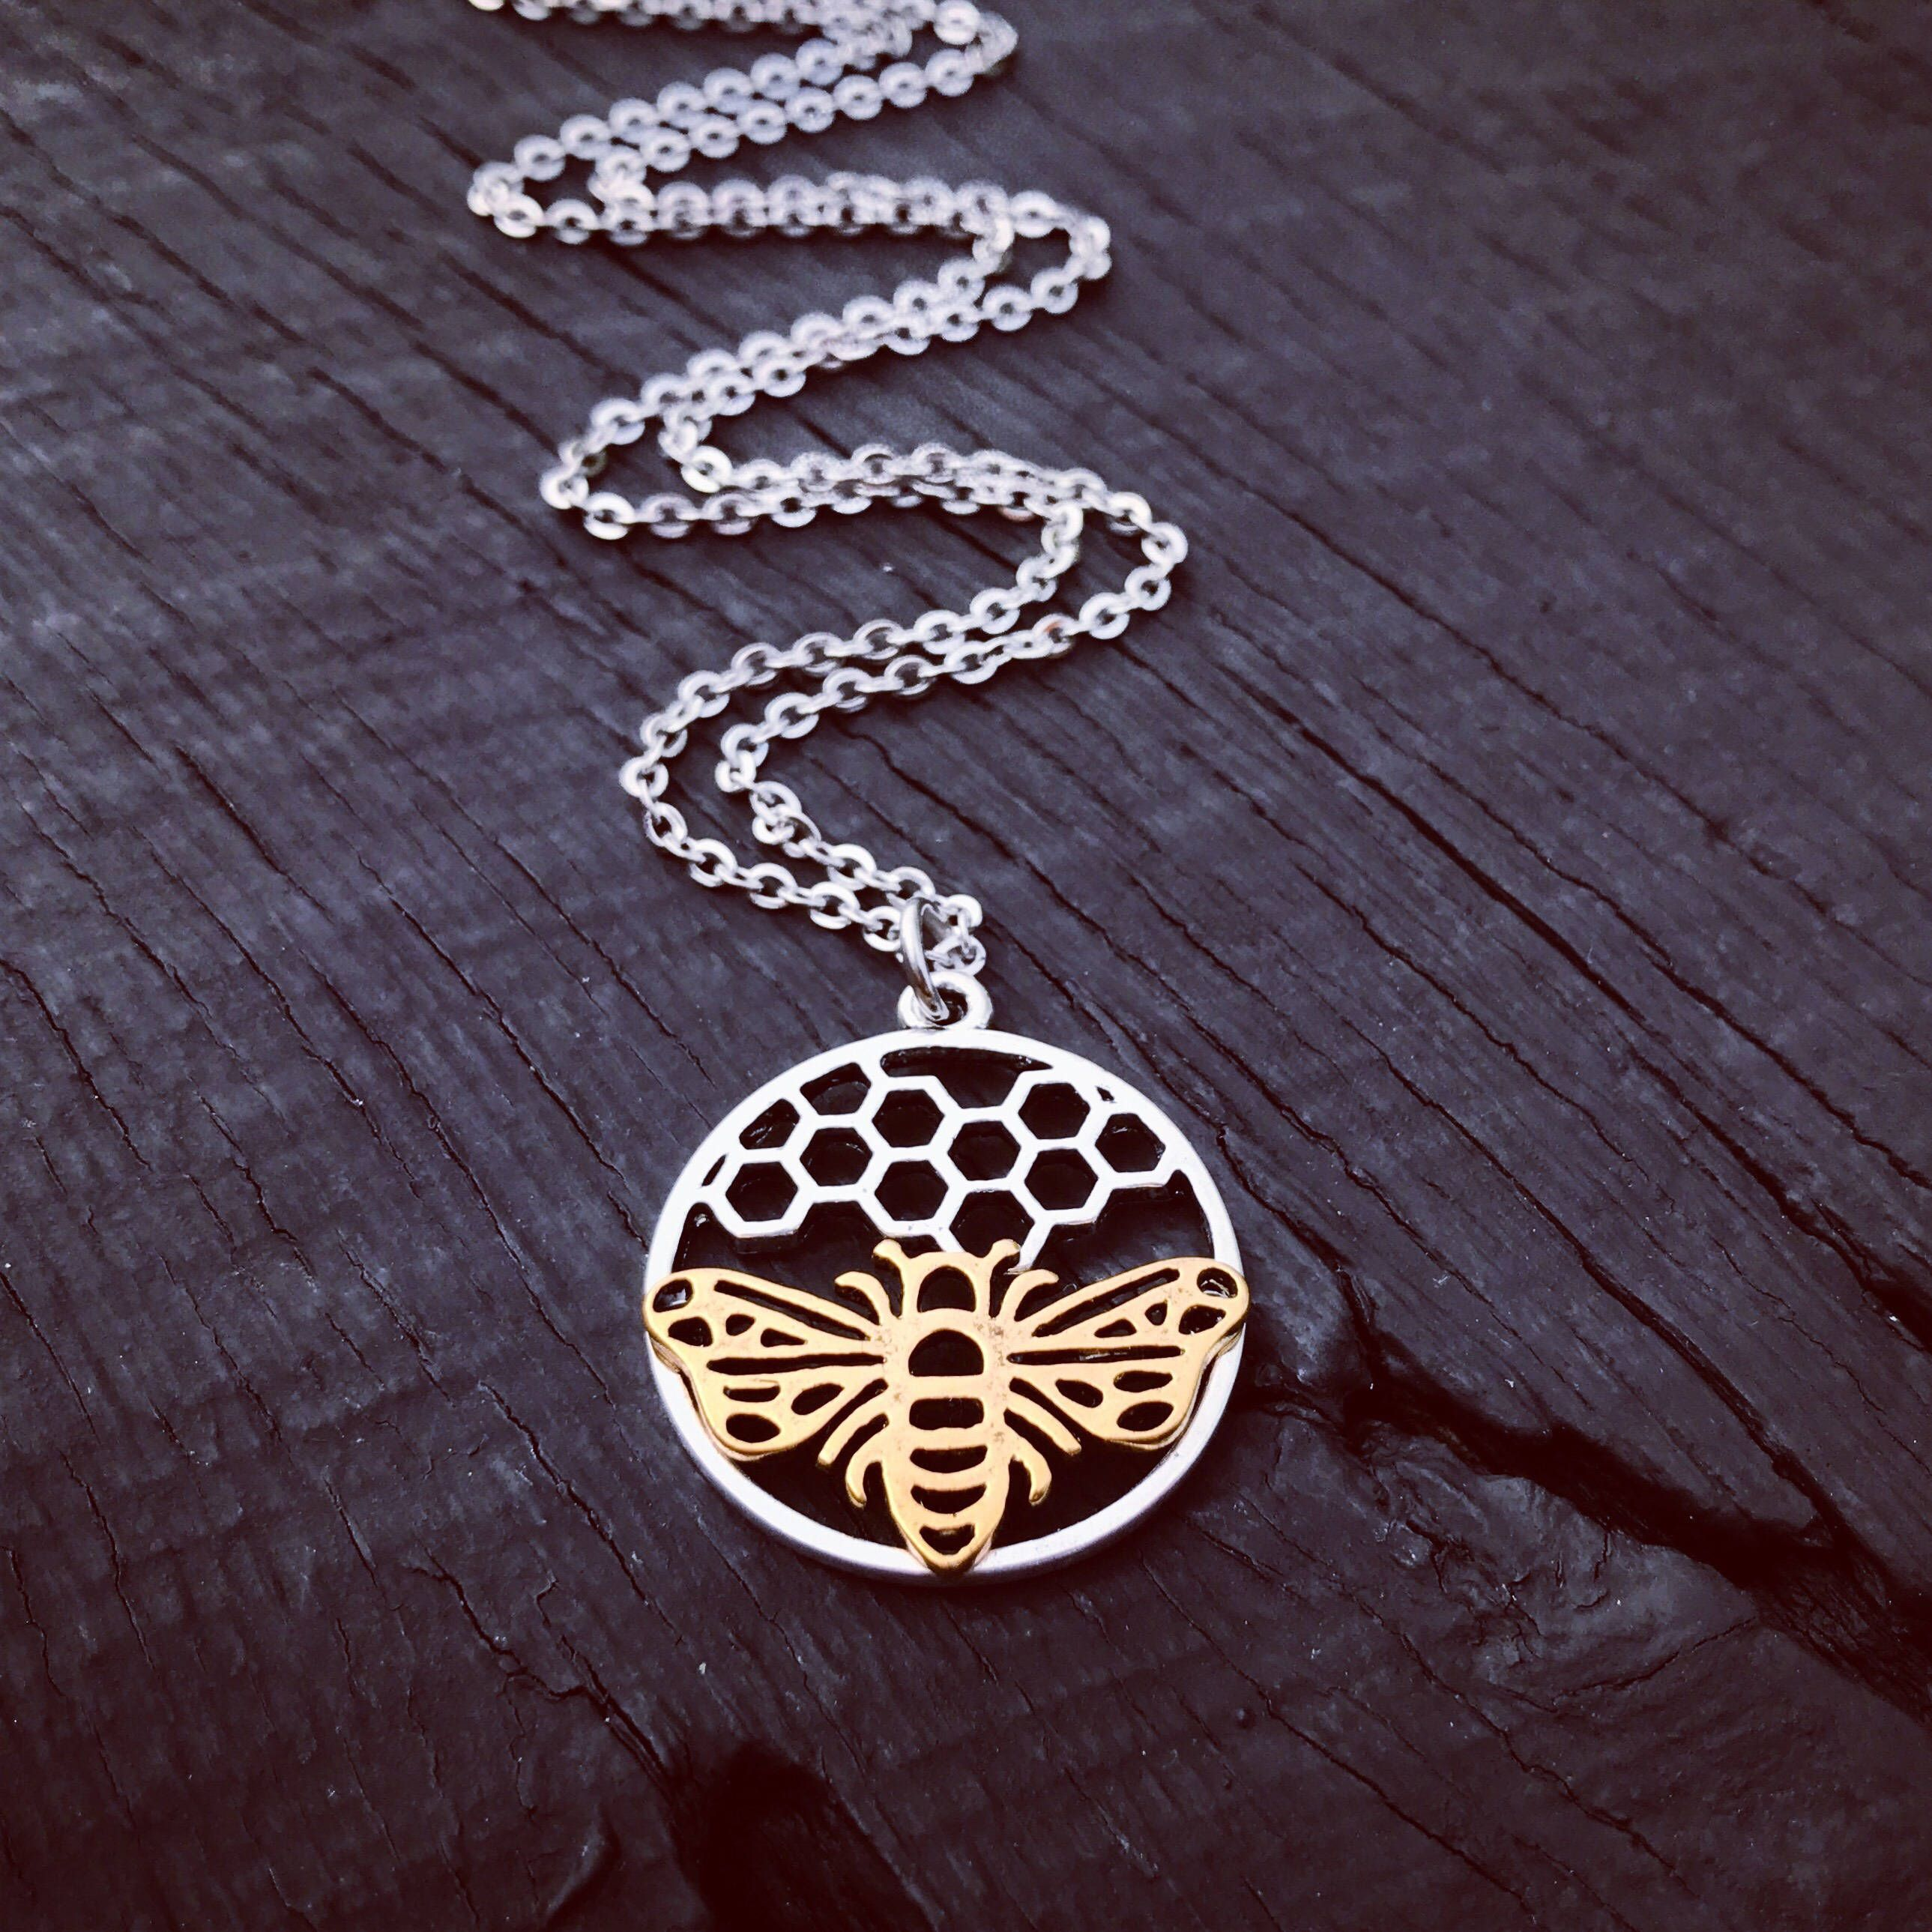 honey macro charm the more pandora of sl honeybee review art pendant bee shine